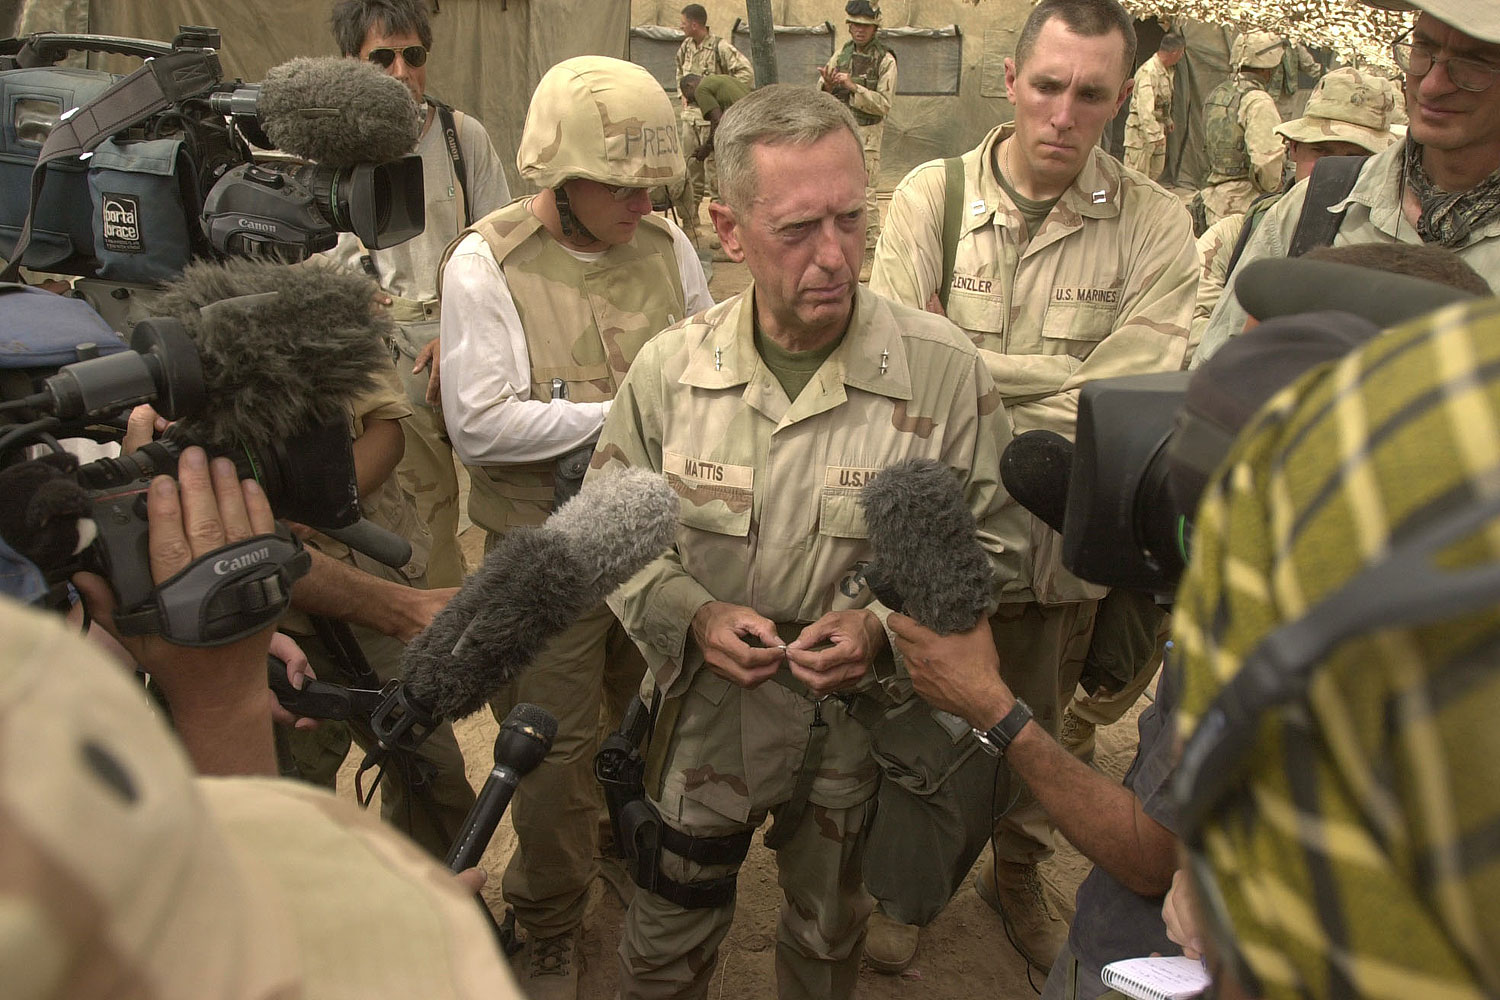 General Jim Mattis answers questions in Iraq in 2003. He has served in both Gulf Wars as well as in Afghanistan